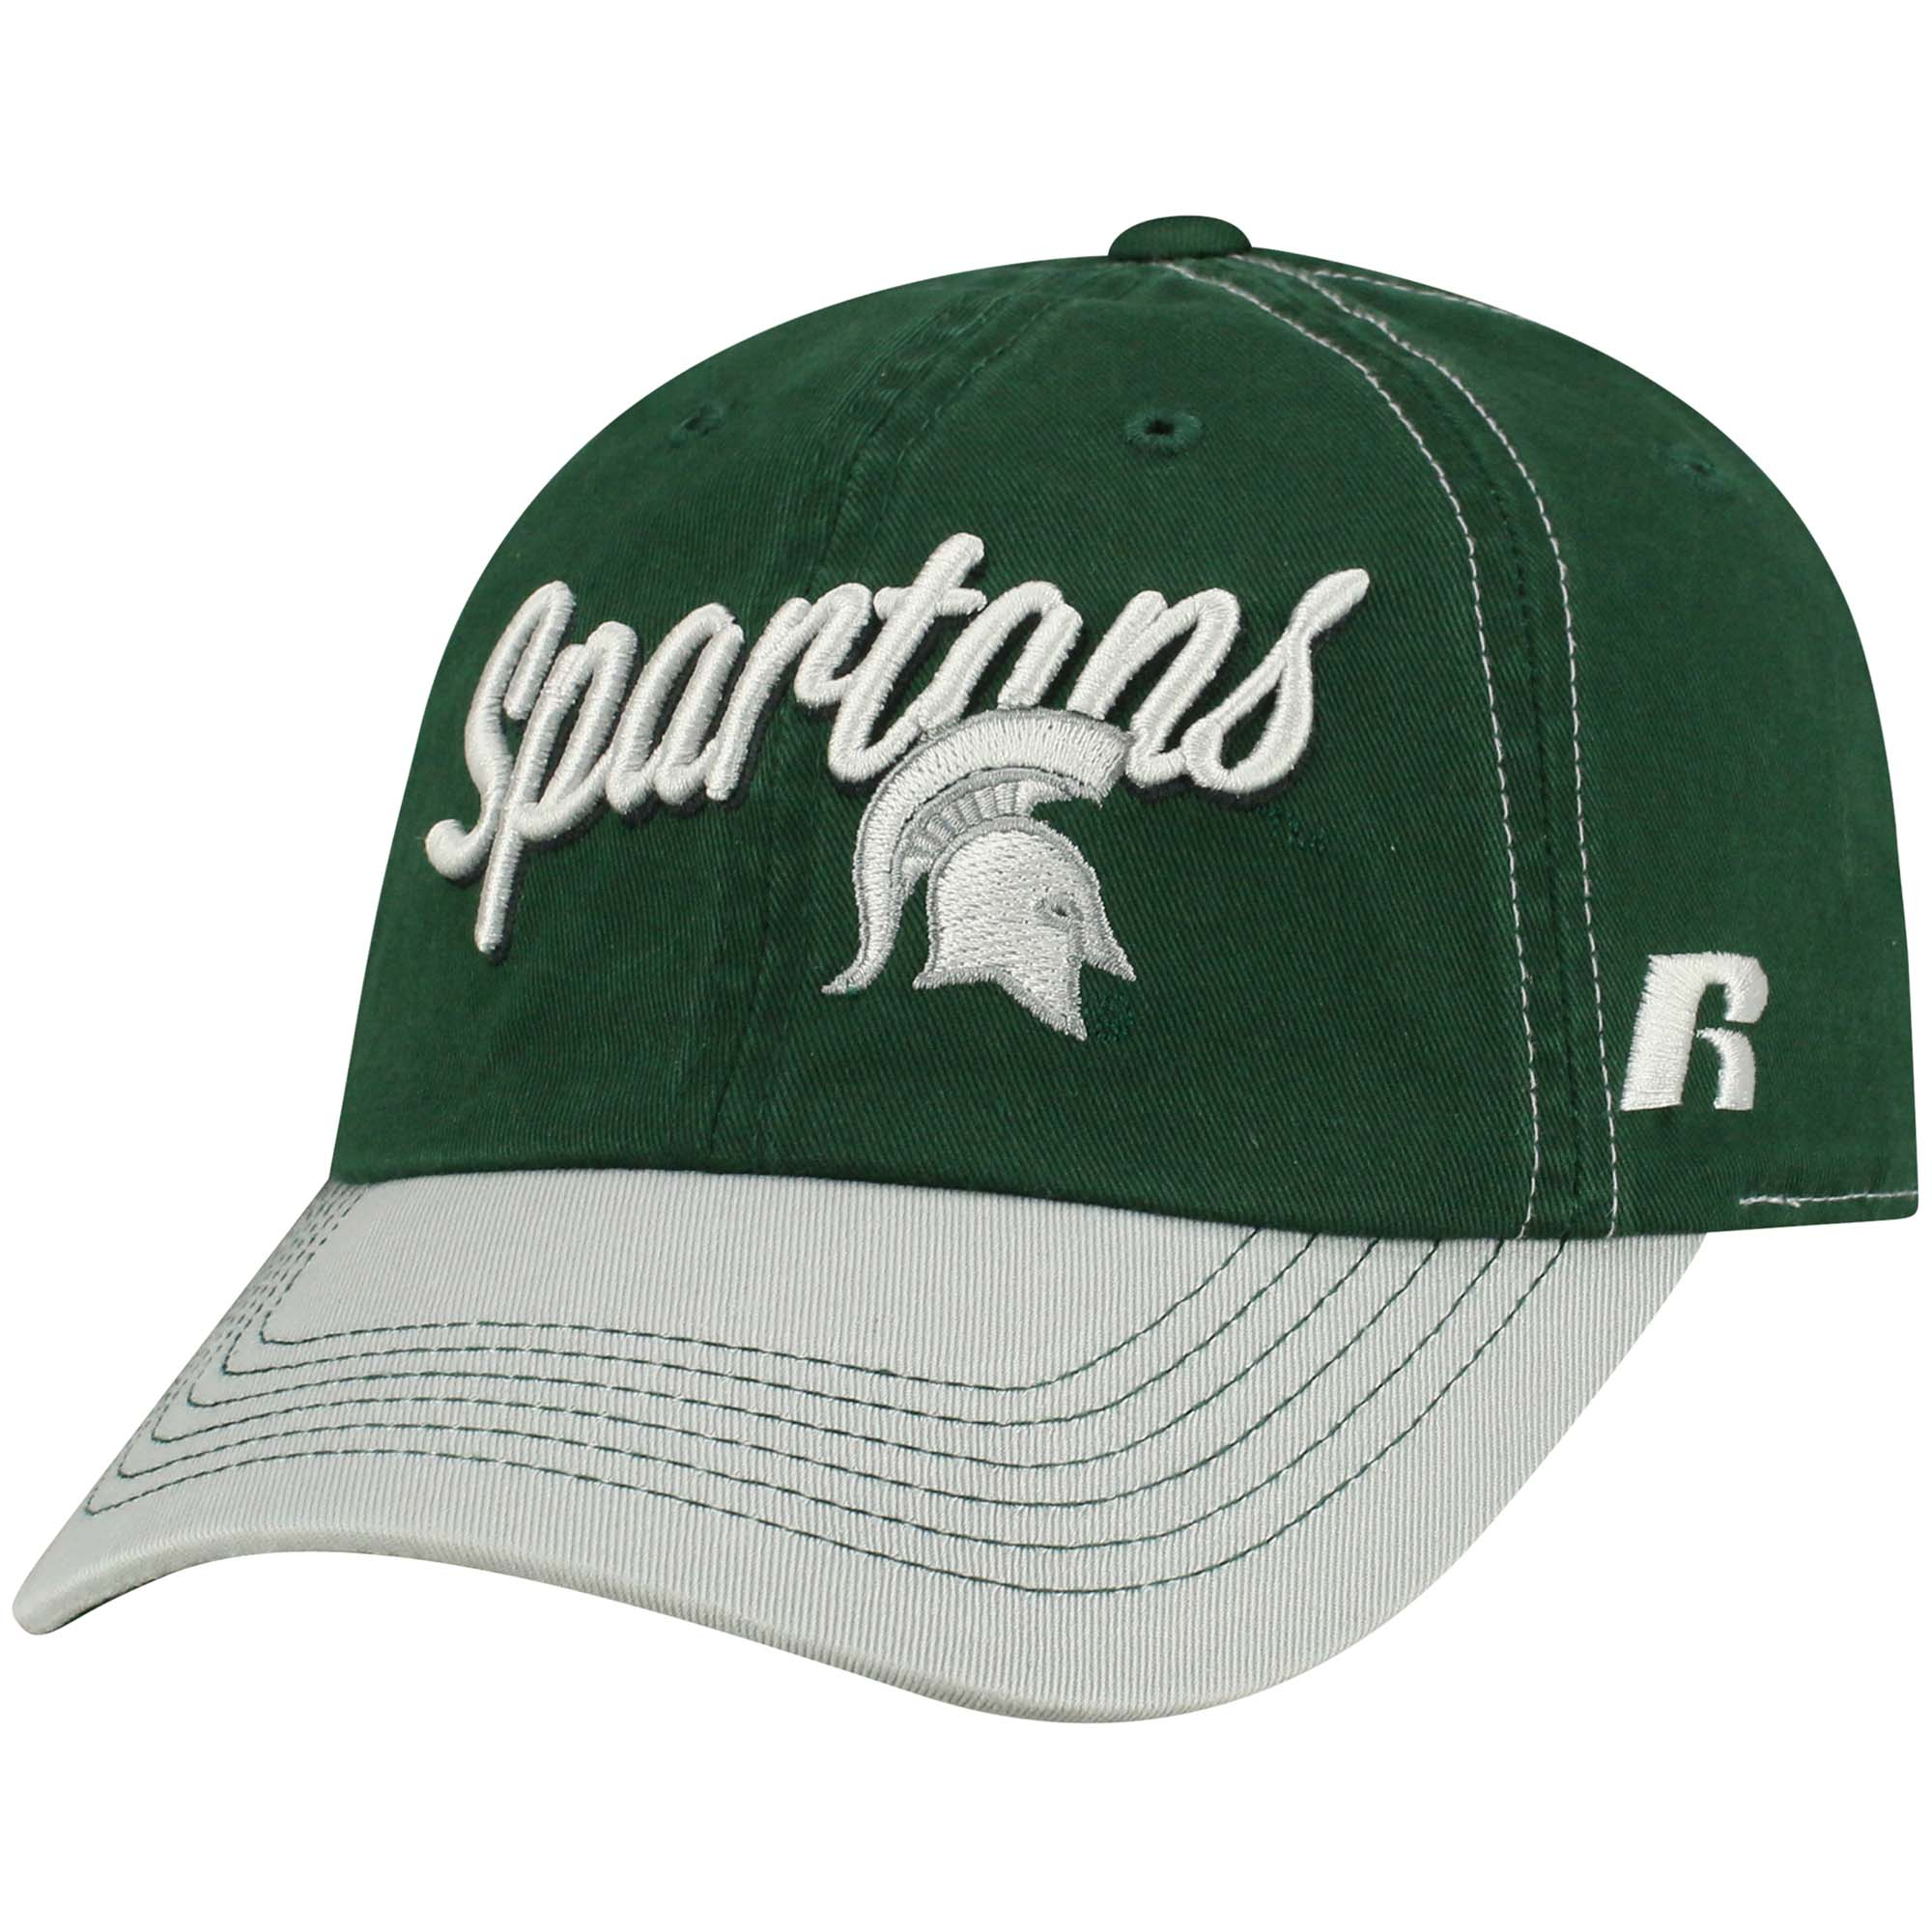 Women's Russell Green Michigan State Spartans Sojourn Adjustable Hat - OSFA